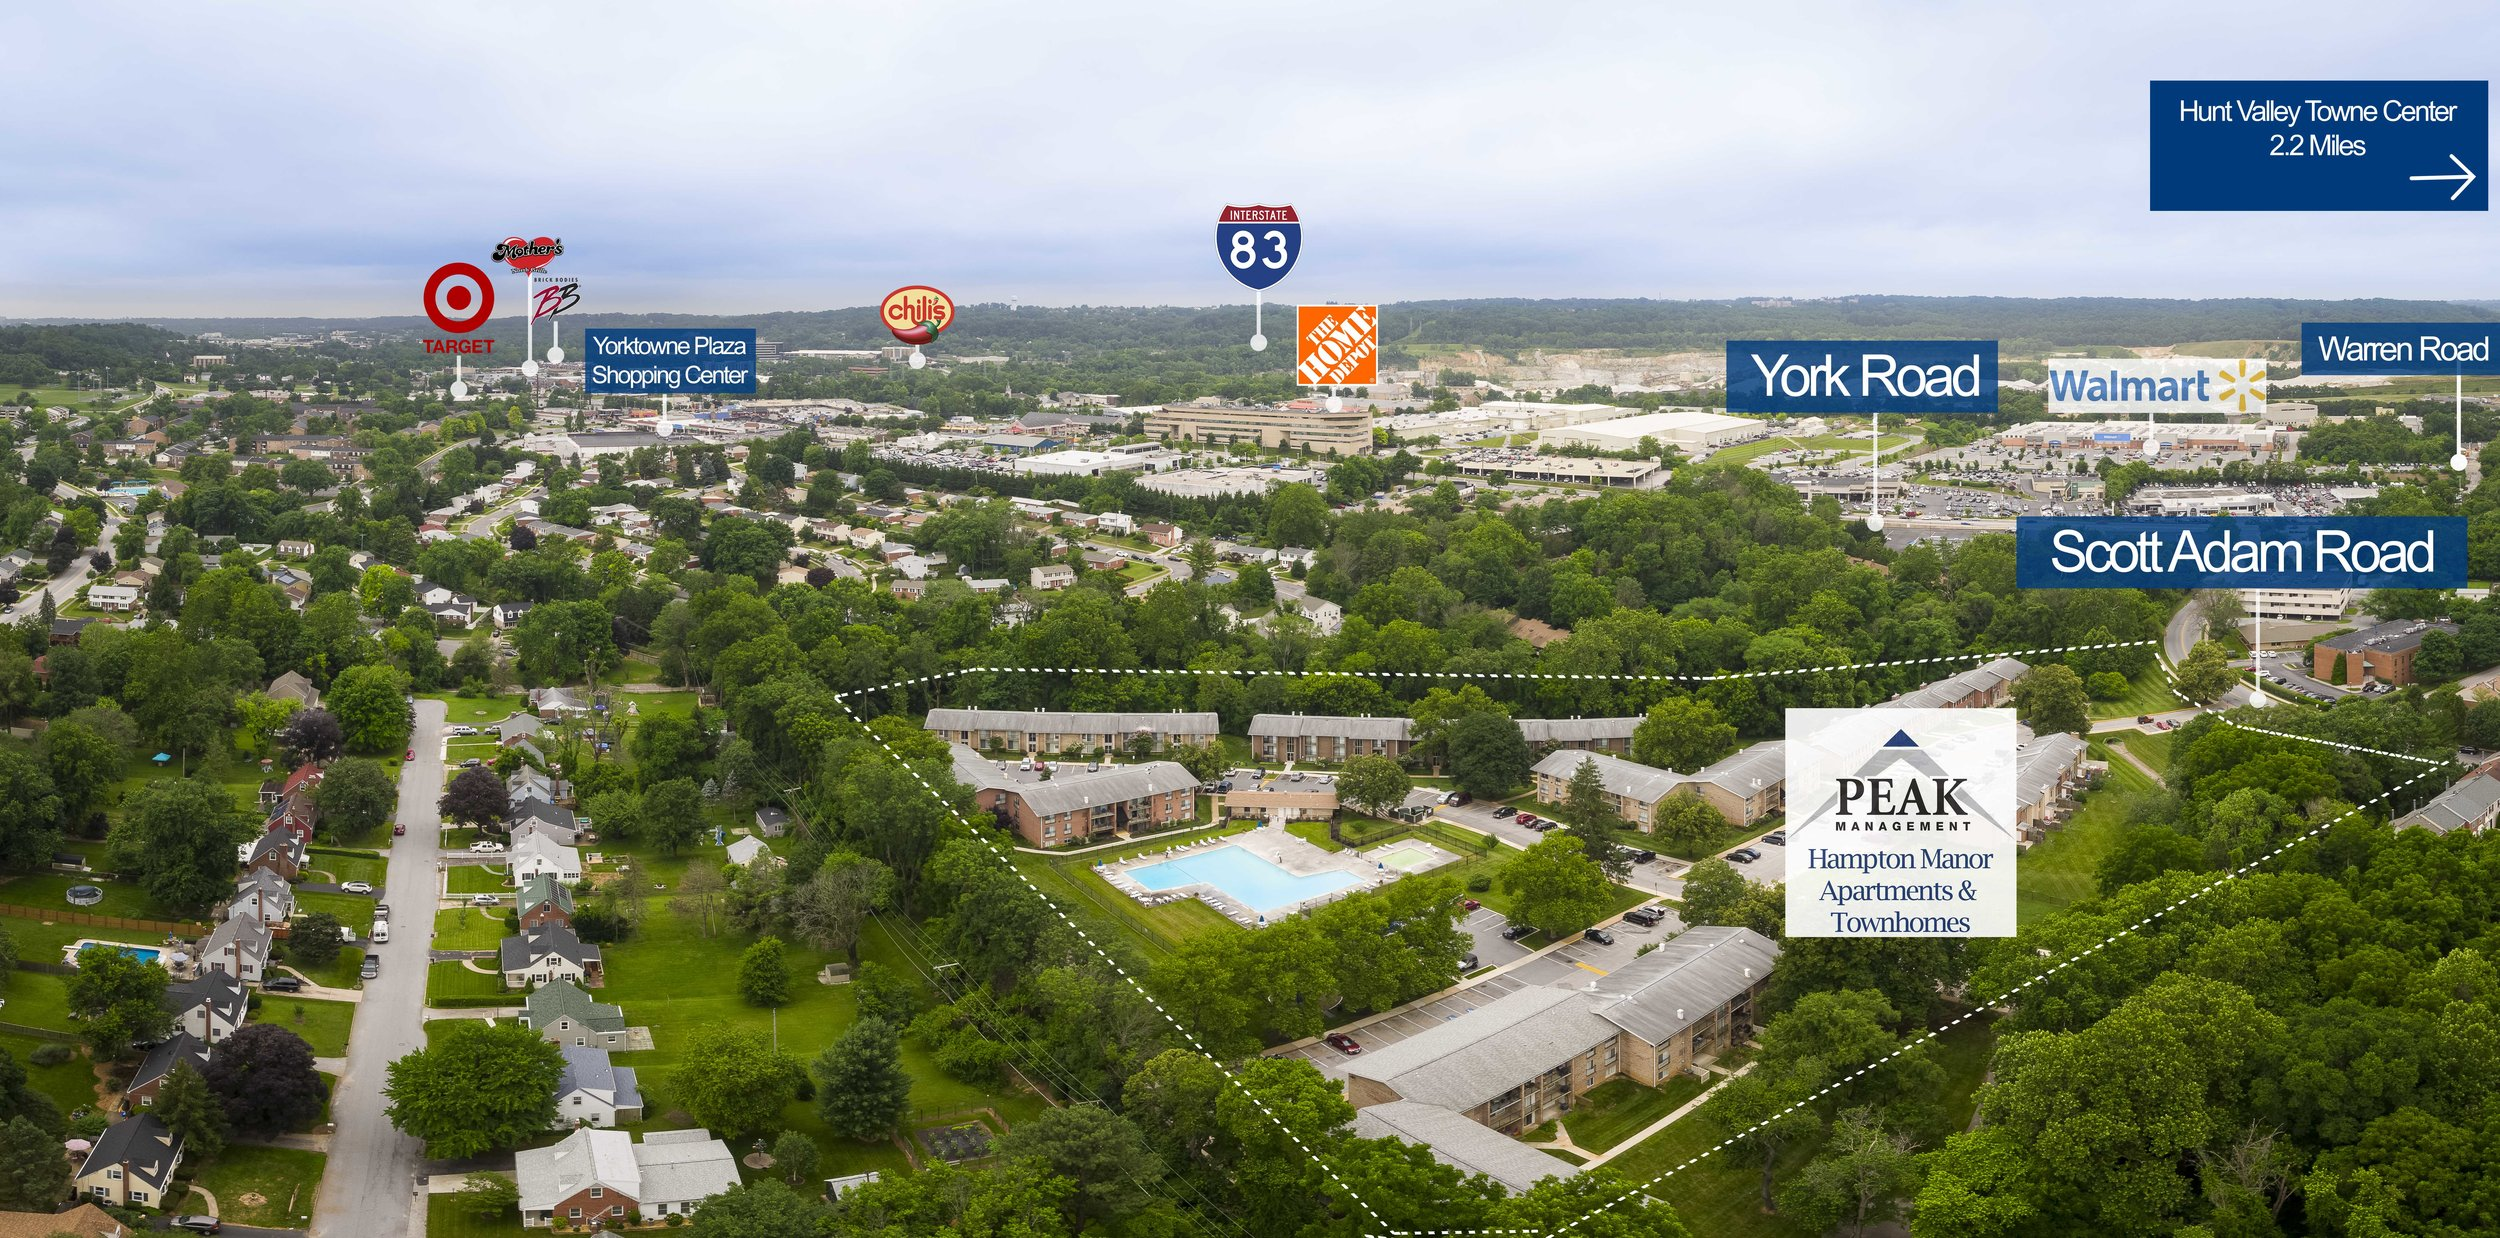 Aerial View of Hampton Manor Apartments & Townhomes